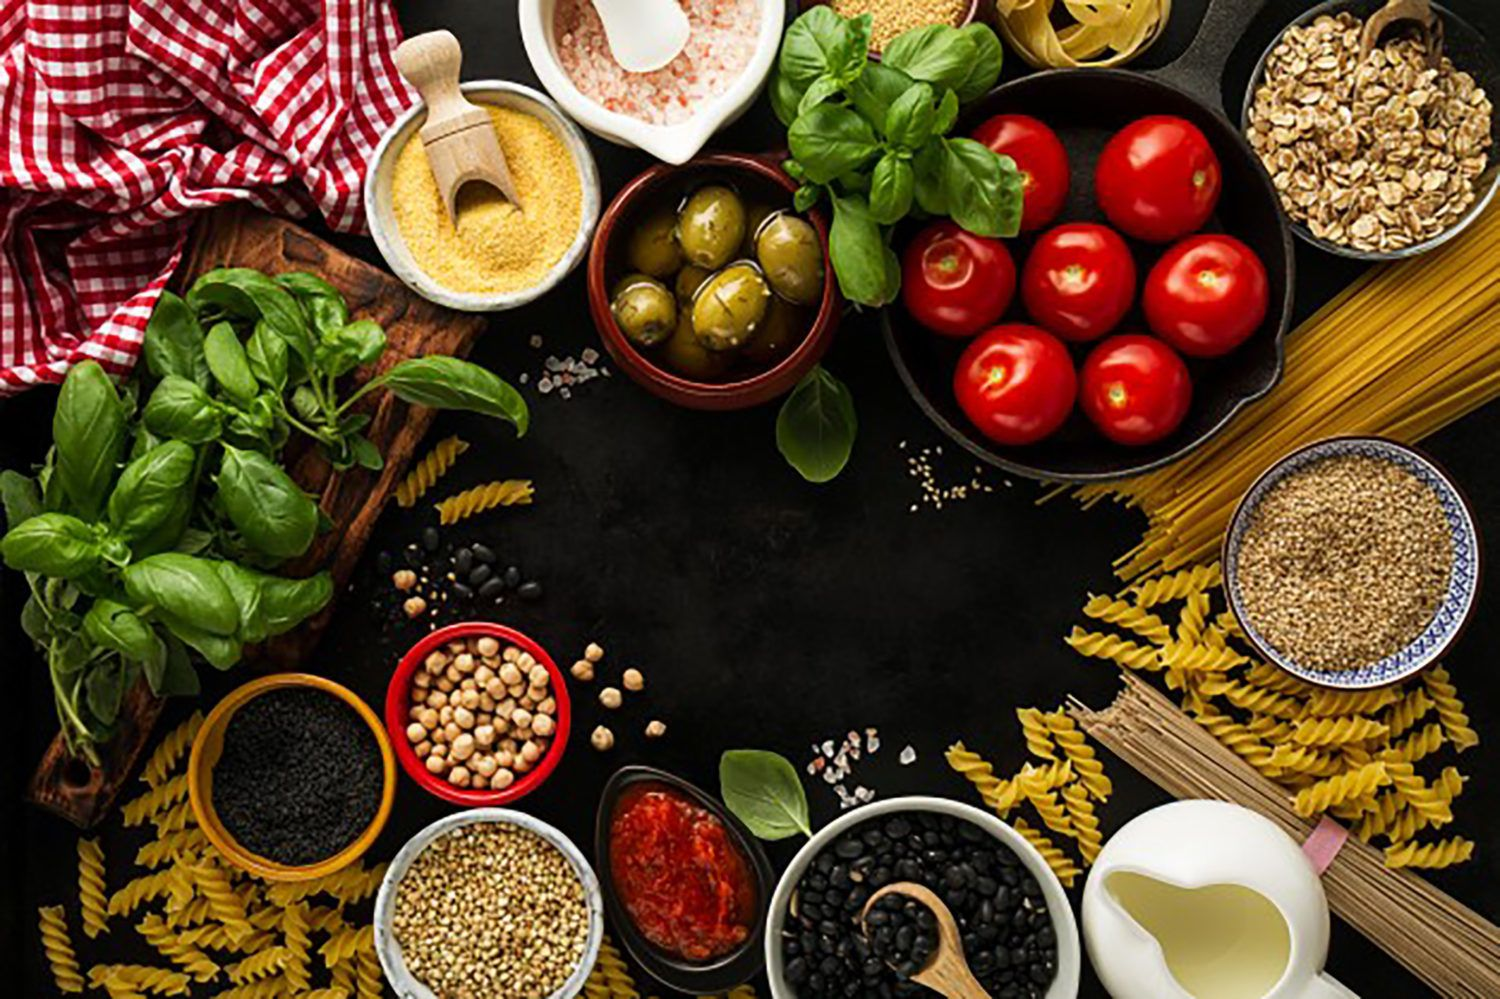 food-background-food-concept-with-various-tasty-fresh-ingredients-for-cooking-italia.jpg